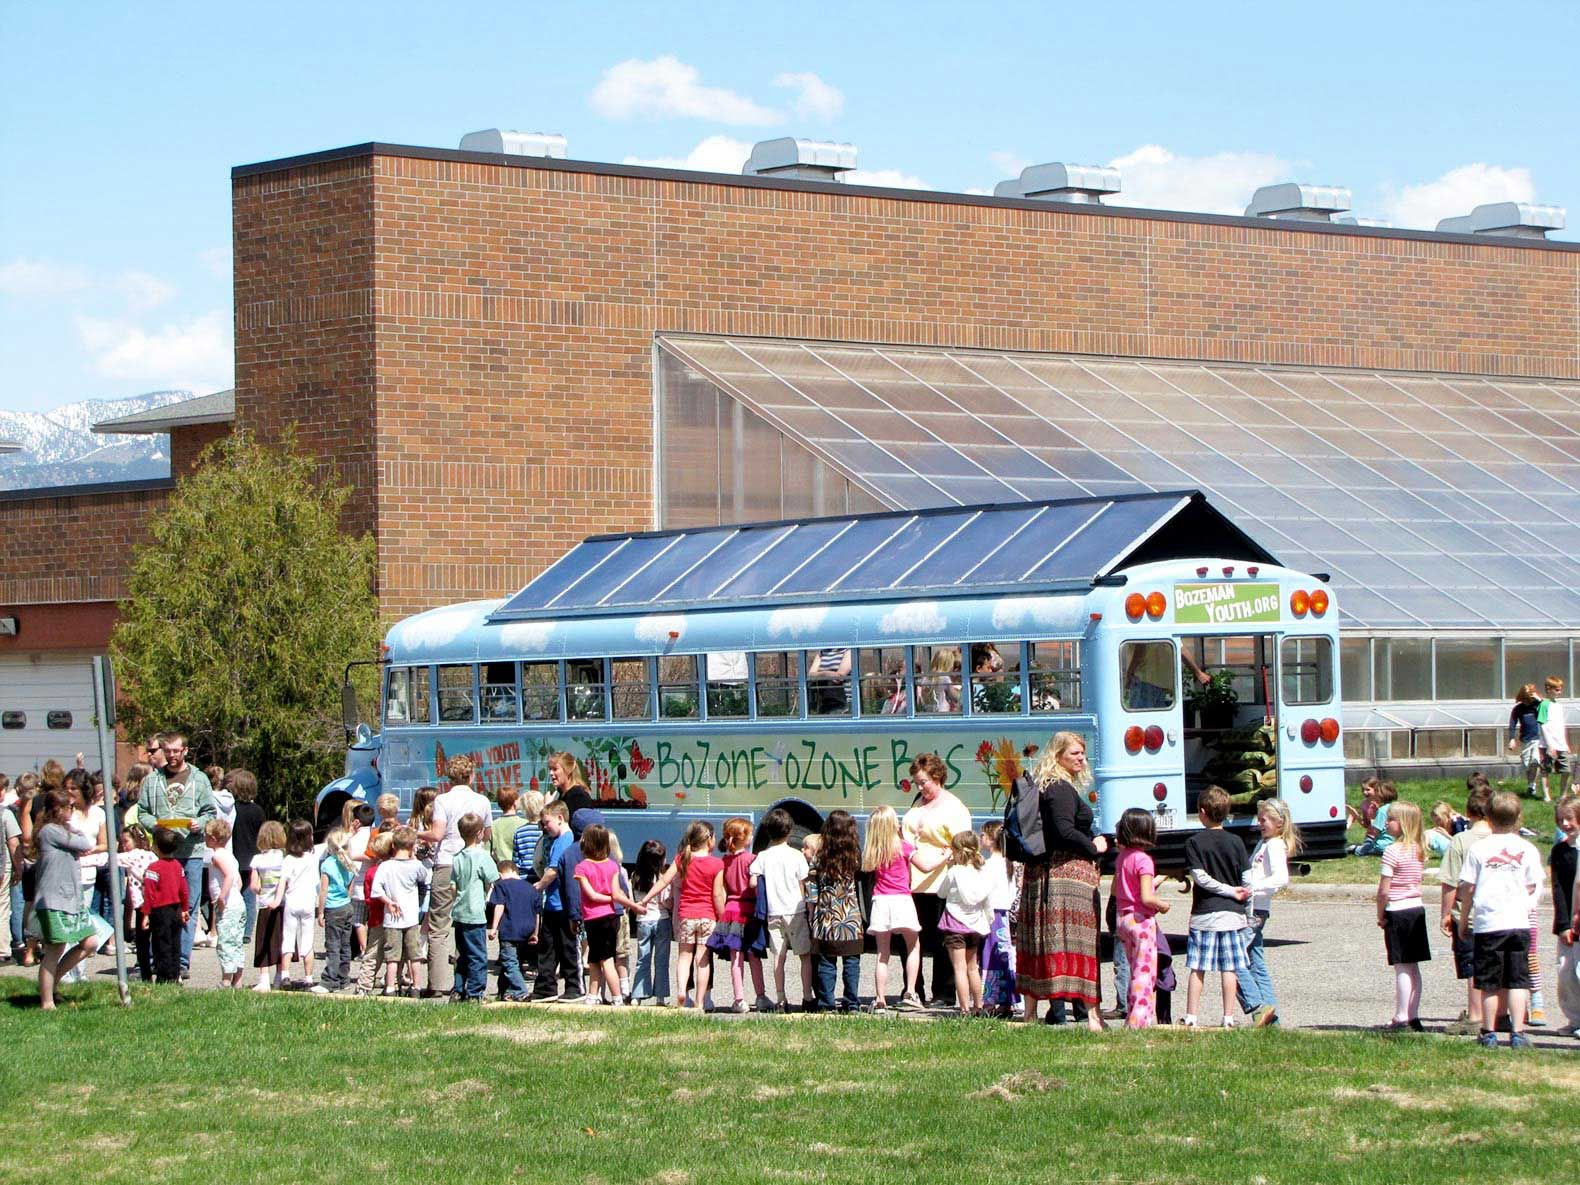 In Bozeman, Montana, a mobile greenhouse teaches elementary students about photosynthesis, gardening, and healthy eating.